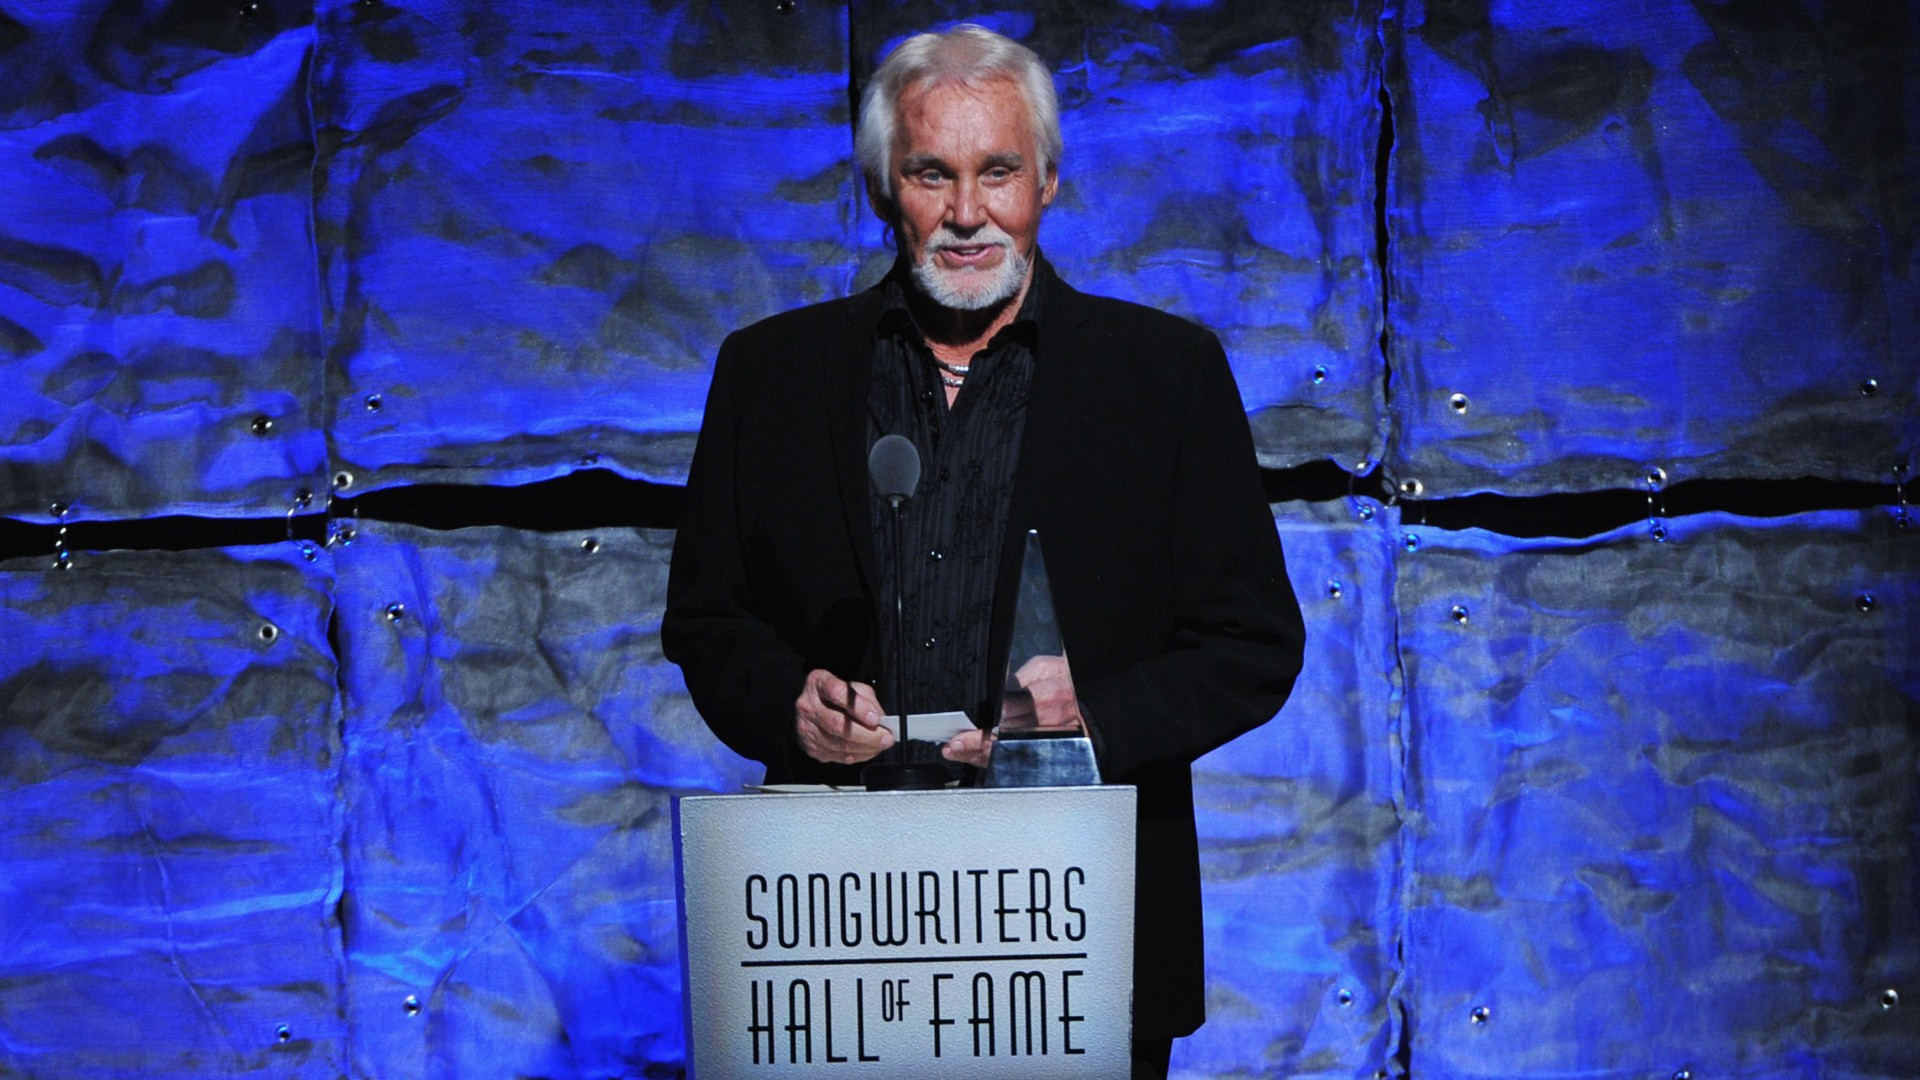 Kenny Rogers speaks onstage at the Songwriters Hall of Fame 43rd Annual induction and awards at The New York Marriott Marquis on June 14, 2012 in New York City. (Theo Wargo/Getty Images for Songwriters Hall Of Fame)